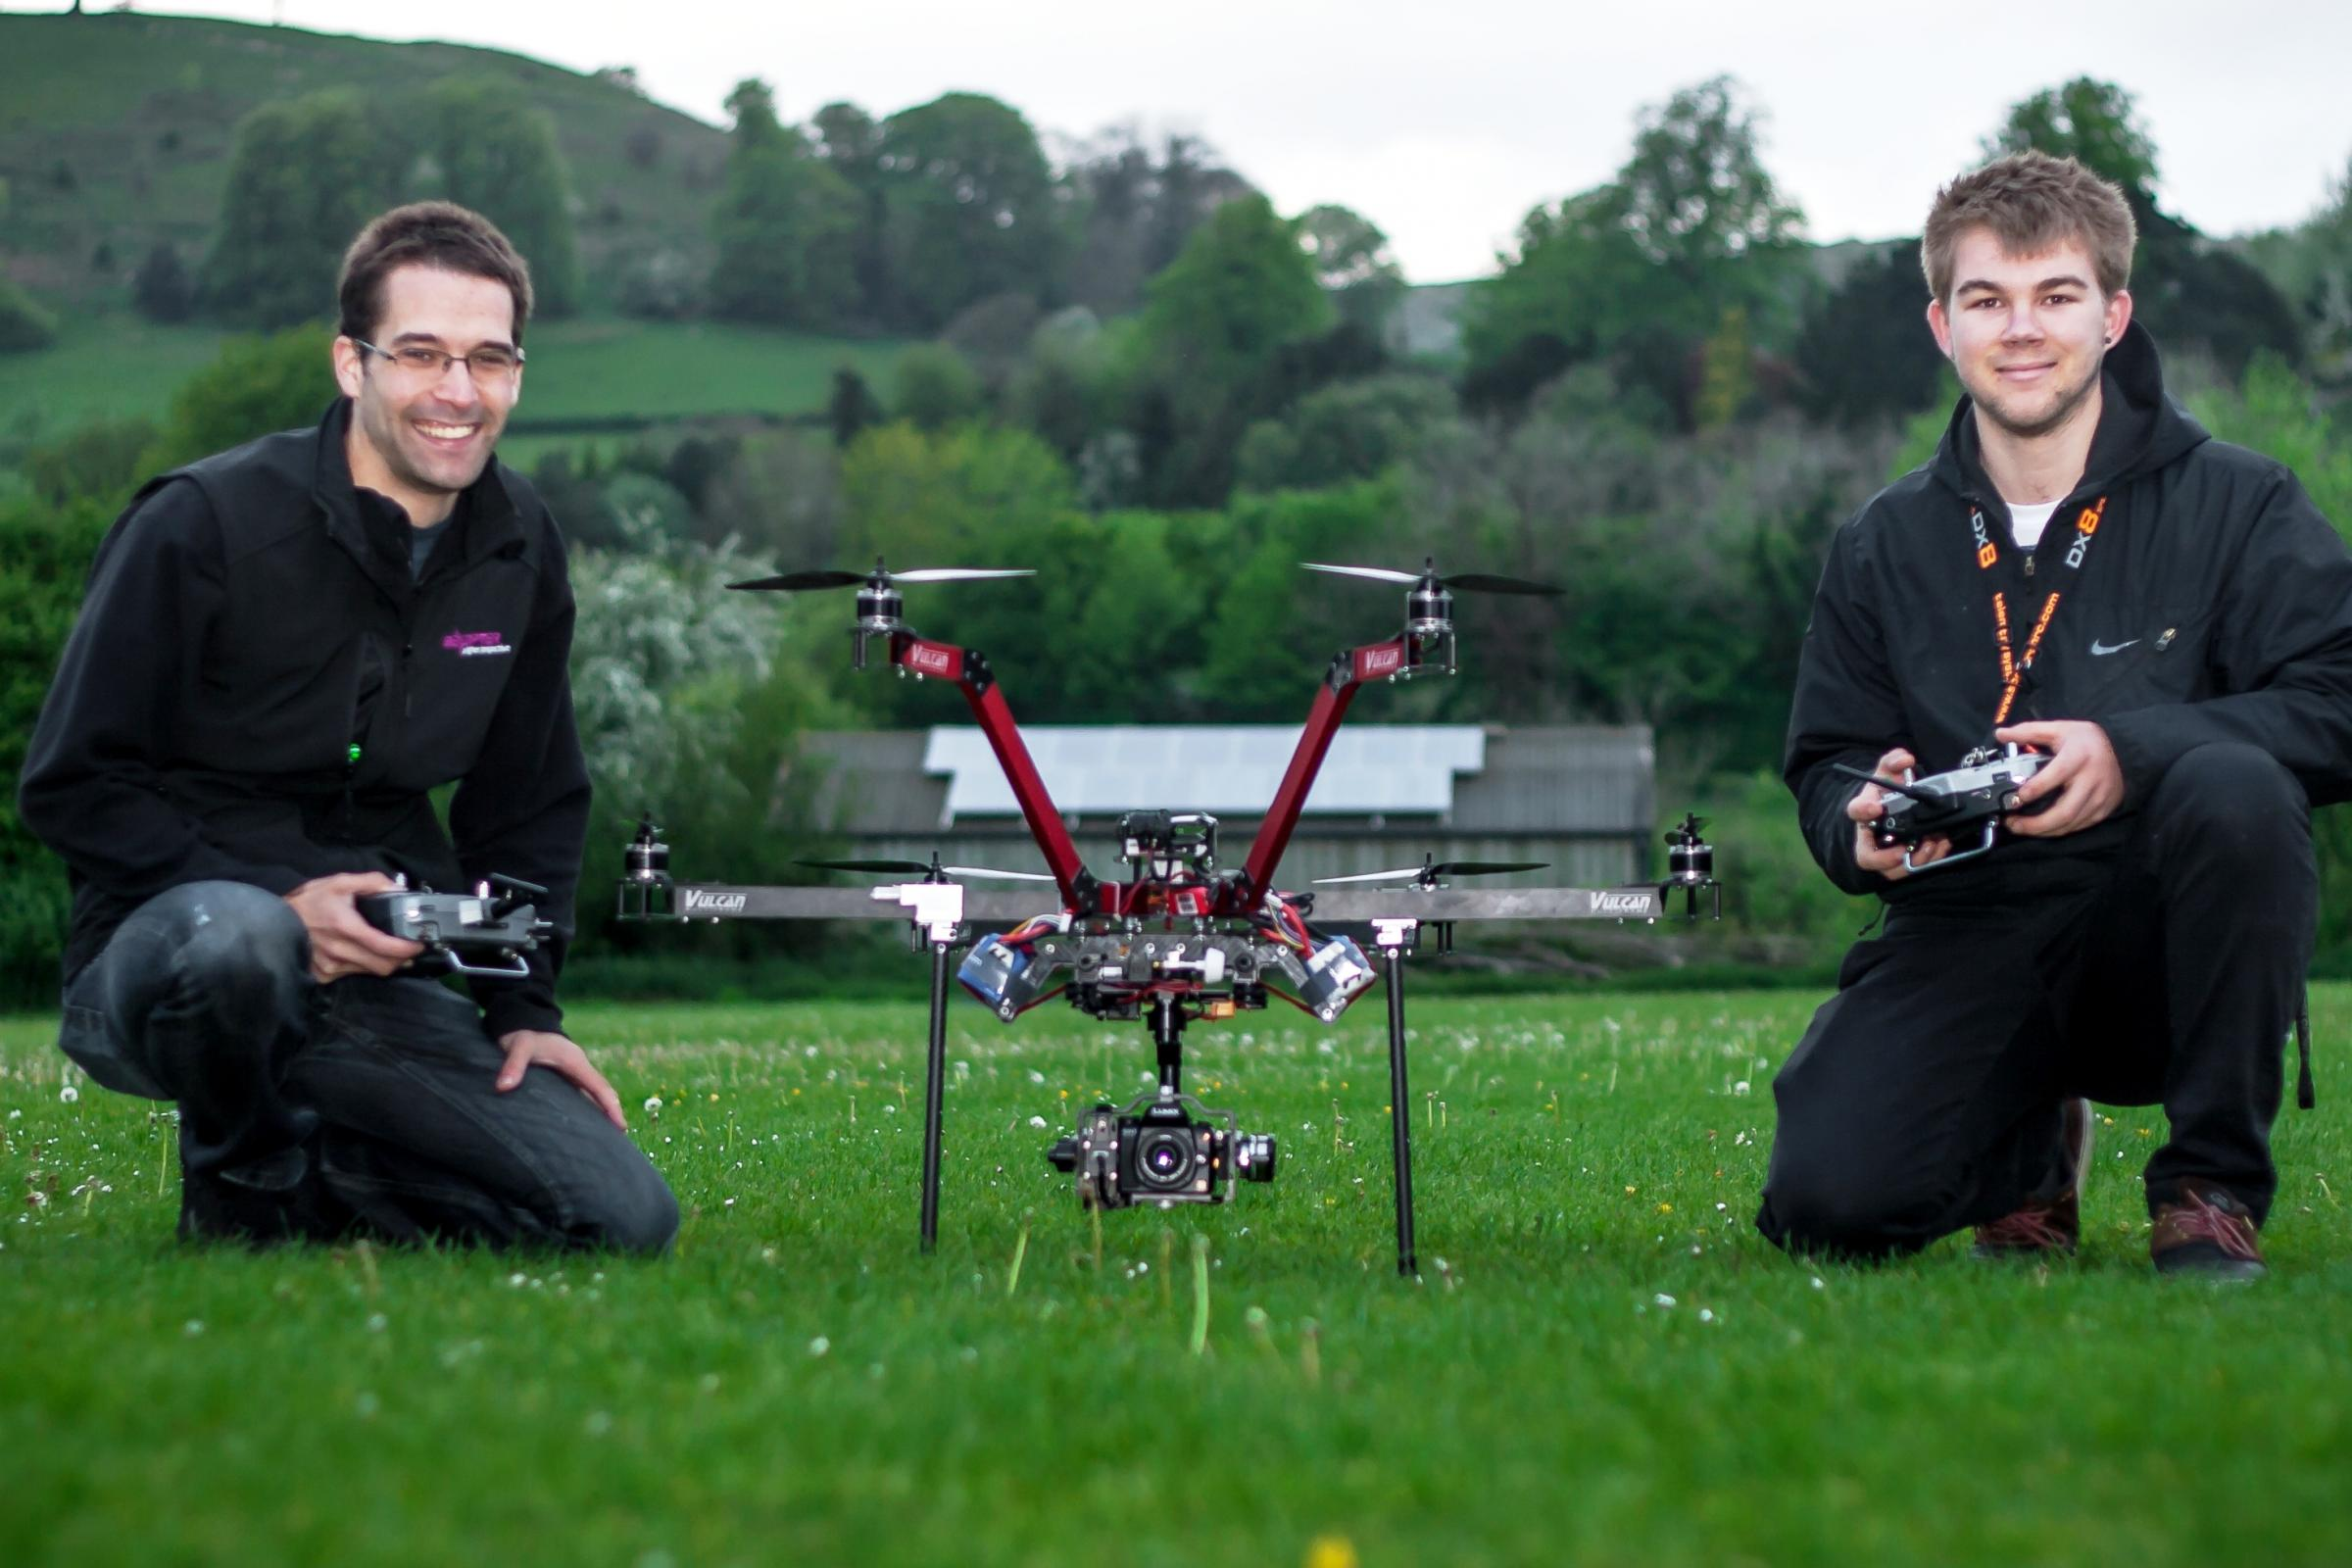 Uley student snaps-up dream job working with remote-control helicopters